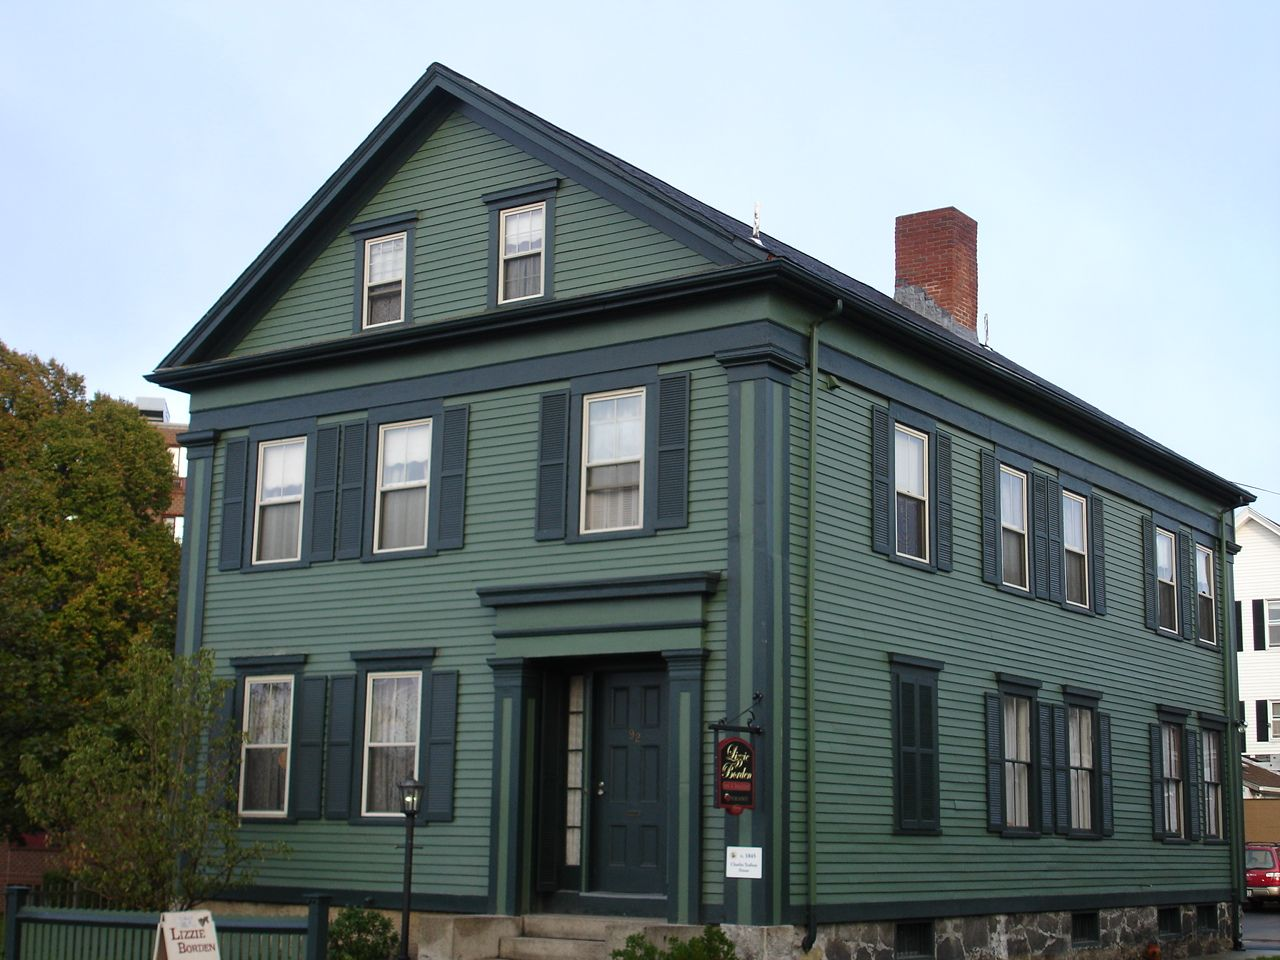 THE LIZZIE BORDEN HOUSE - Fall River, Massachusetts - Spent a weekend there doing research on the murders - lots of eerie stuff happened while we were there!